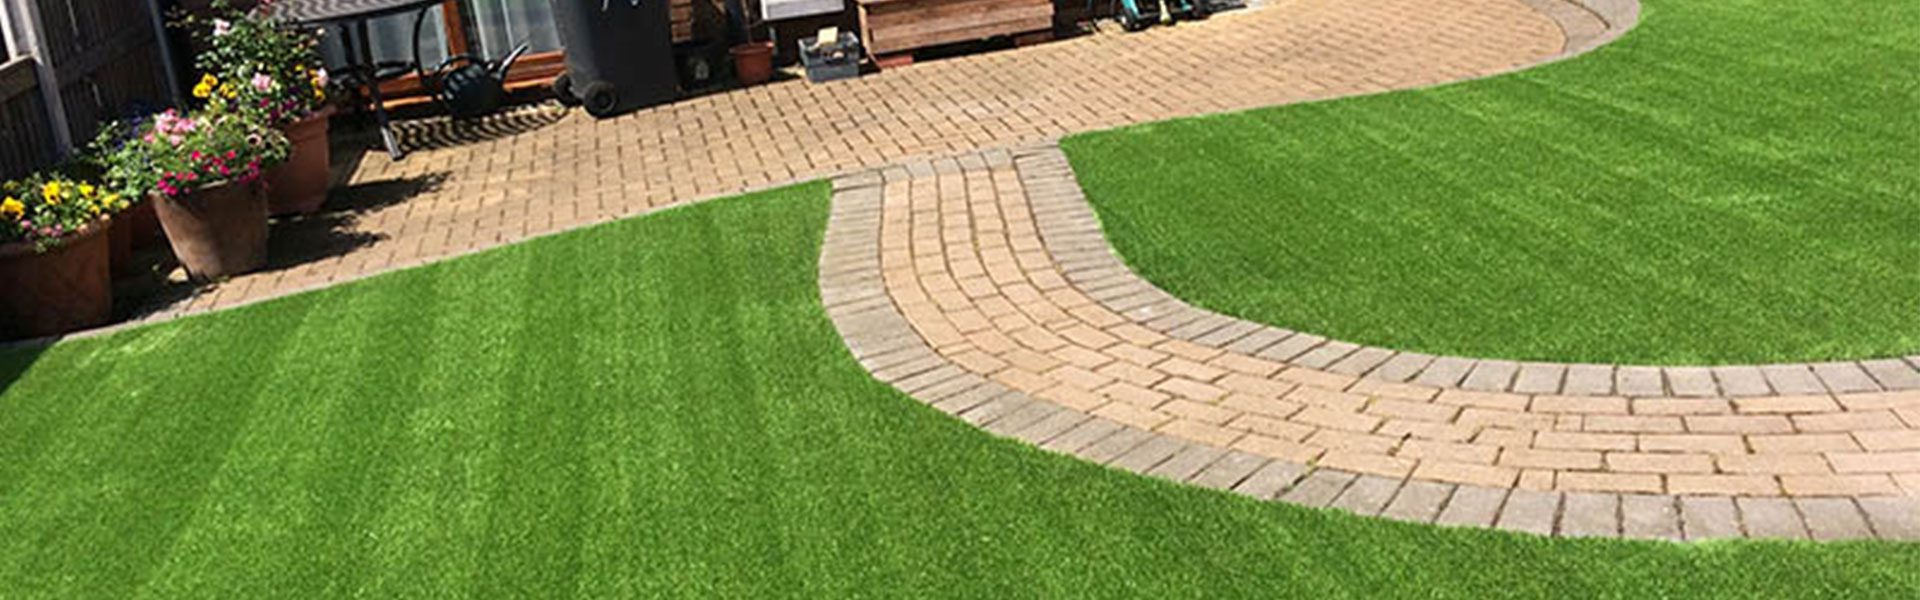 Home Value Increases with Artificial Grass